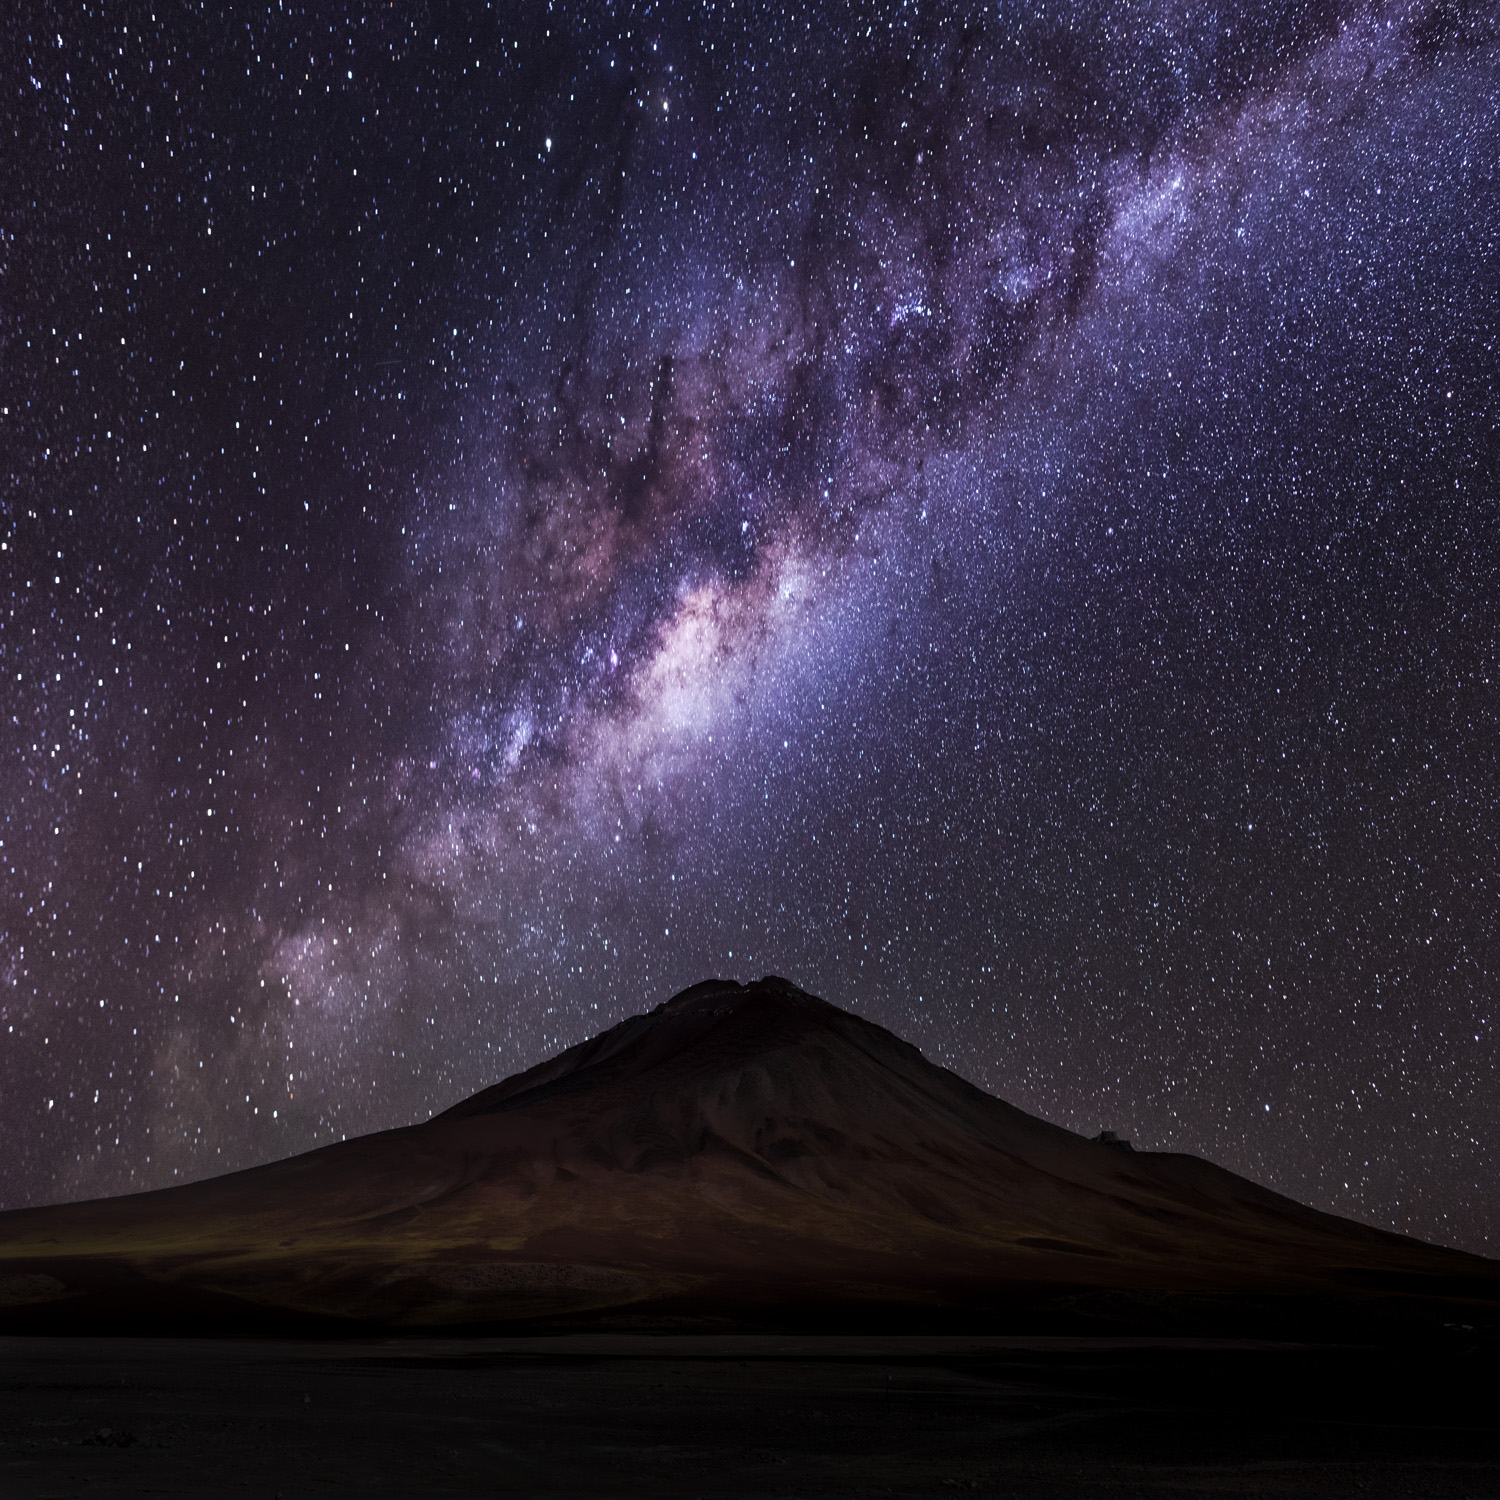 Milky Way captured on our first night on tour, with the foreground from earlier in the afternoon.